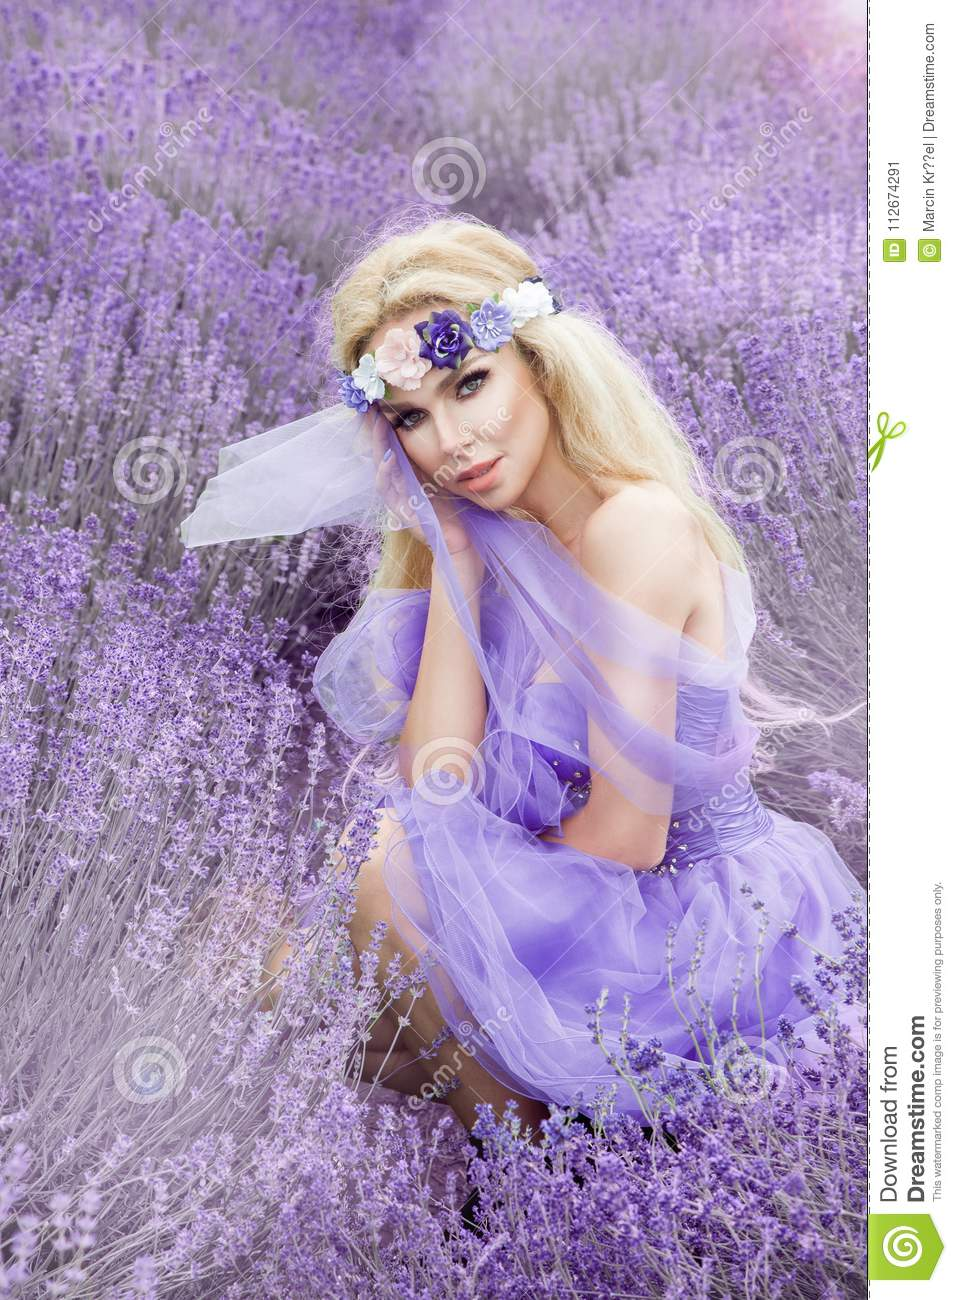 Beautiful woman with blond hair in a beautiful long white wedding beautiful woman with blond hair in a beautiful long white wedding dress stands on a field with heather flowers in purple mightylinksfo